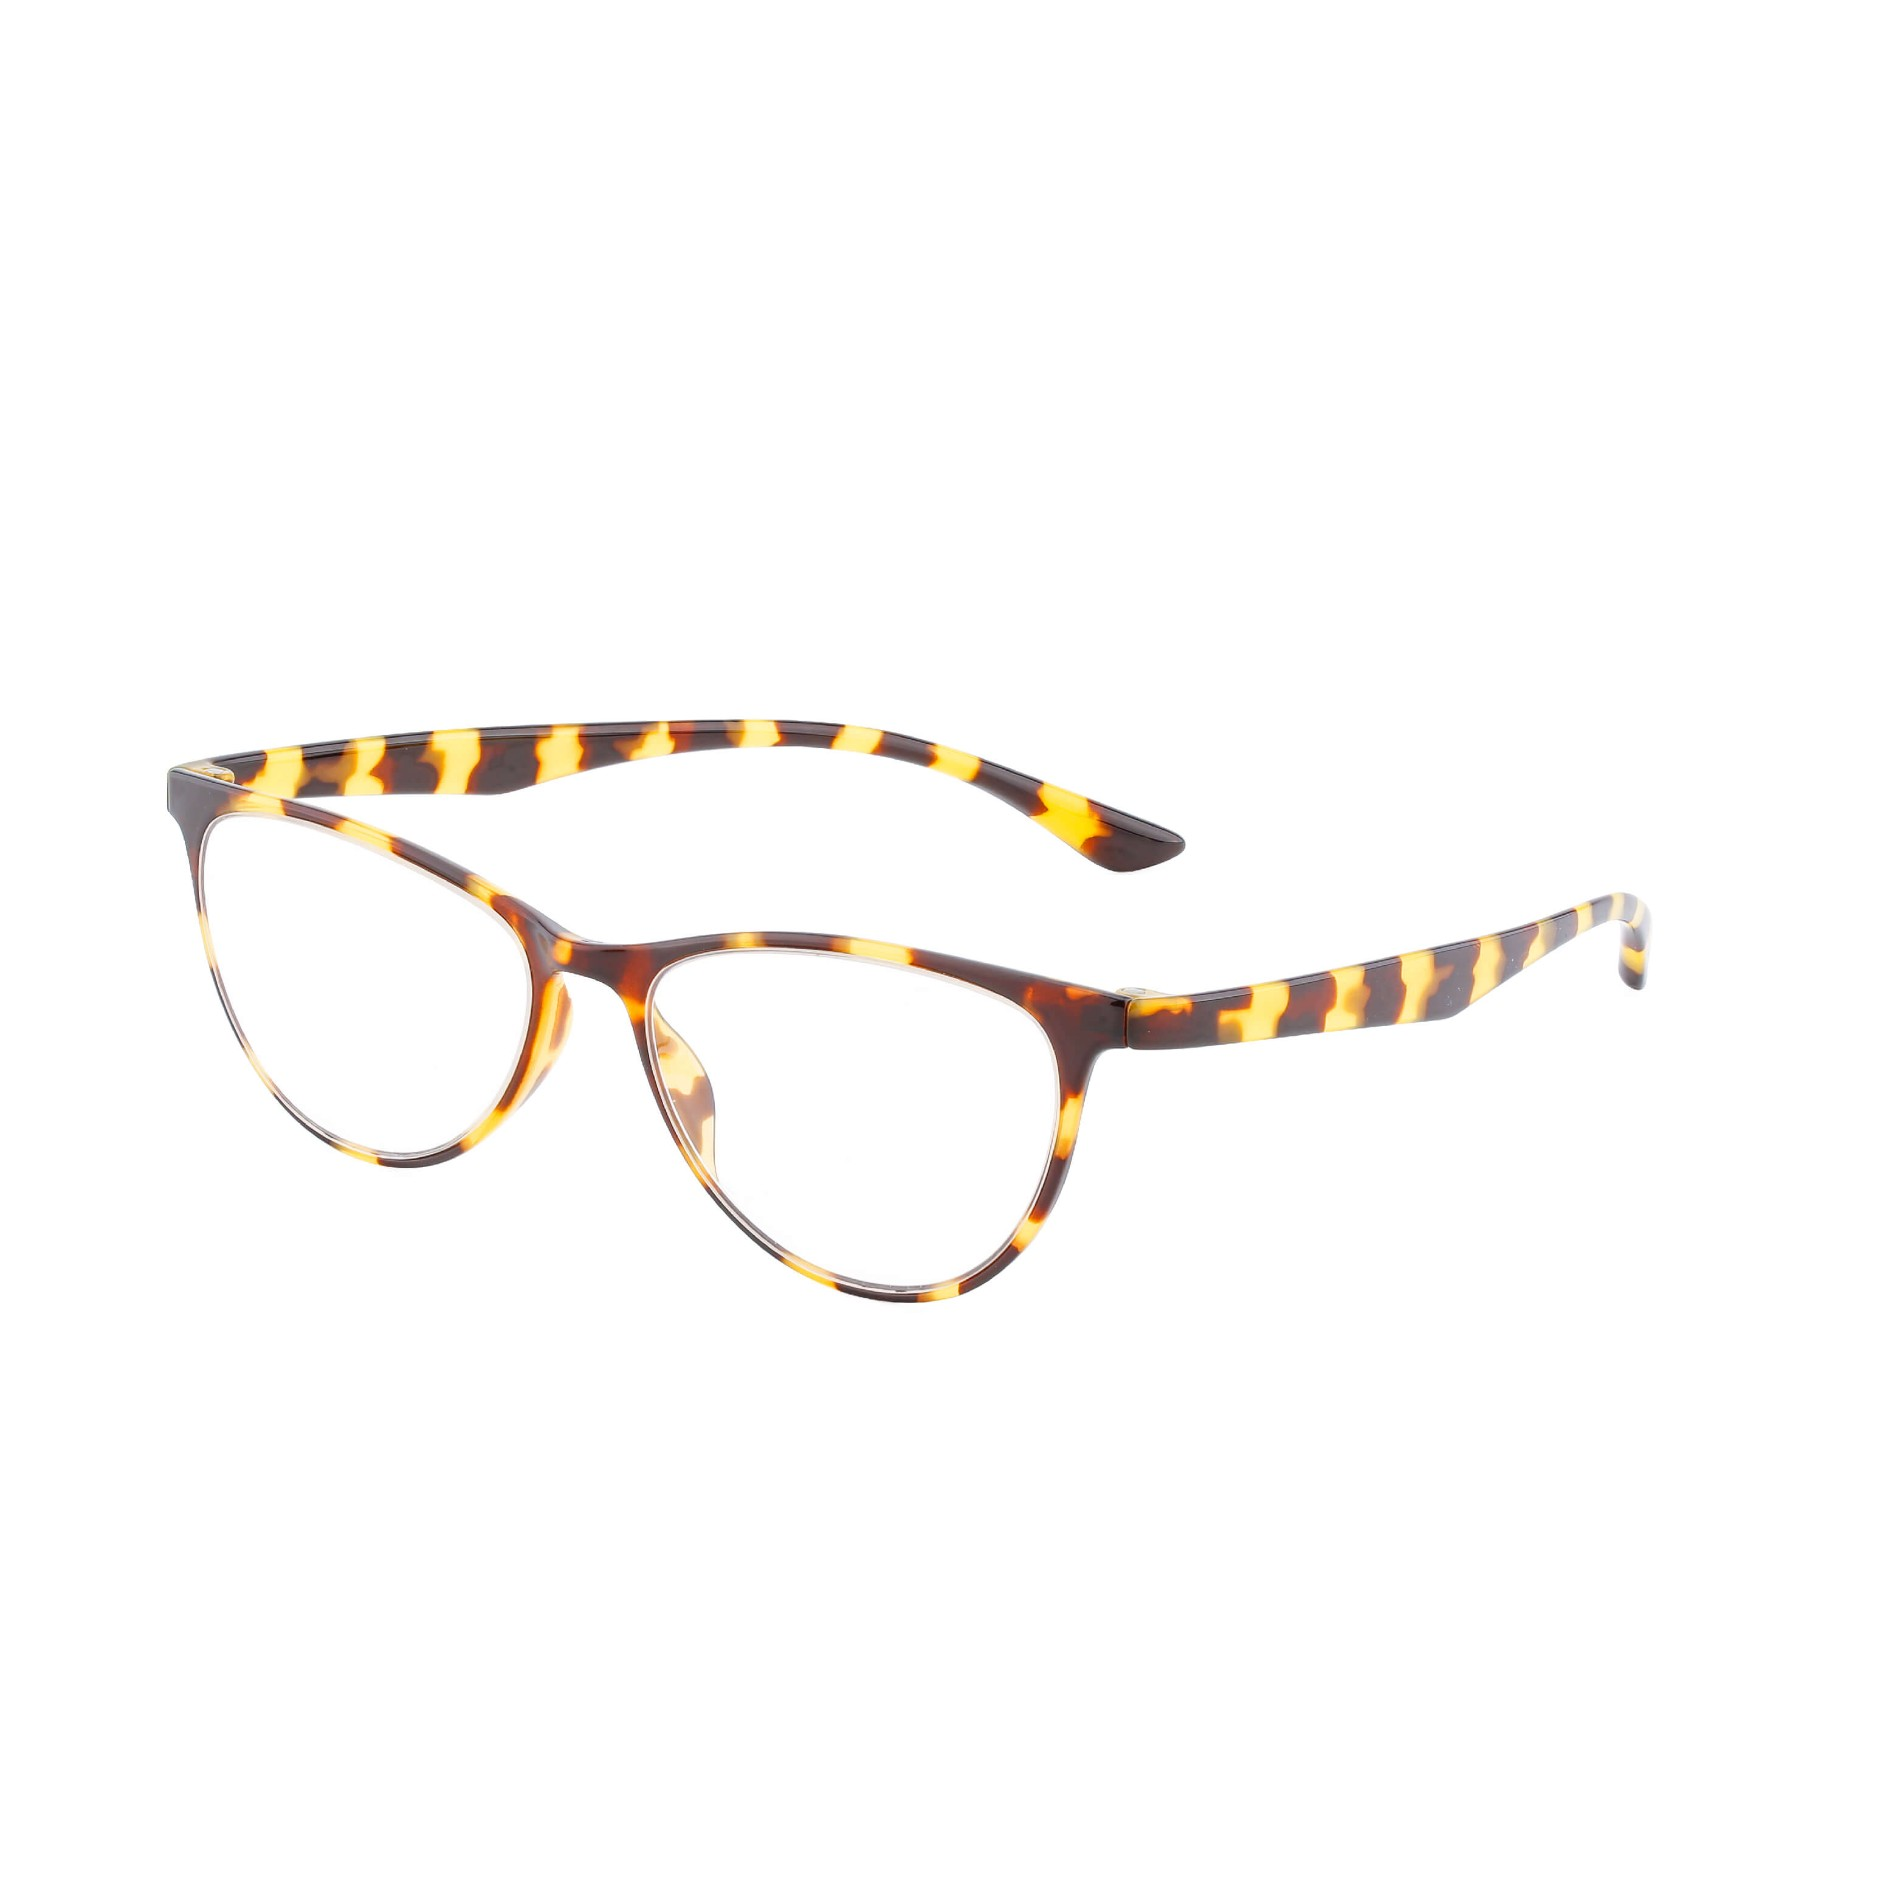 Hight Quality Light Weight Reading Glasses Manufacturers, Hight Quality Light Weight Reading Glasses Factory, Supply Hight Quality Light Weight Reading Glasses